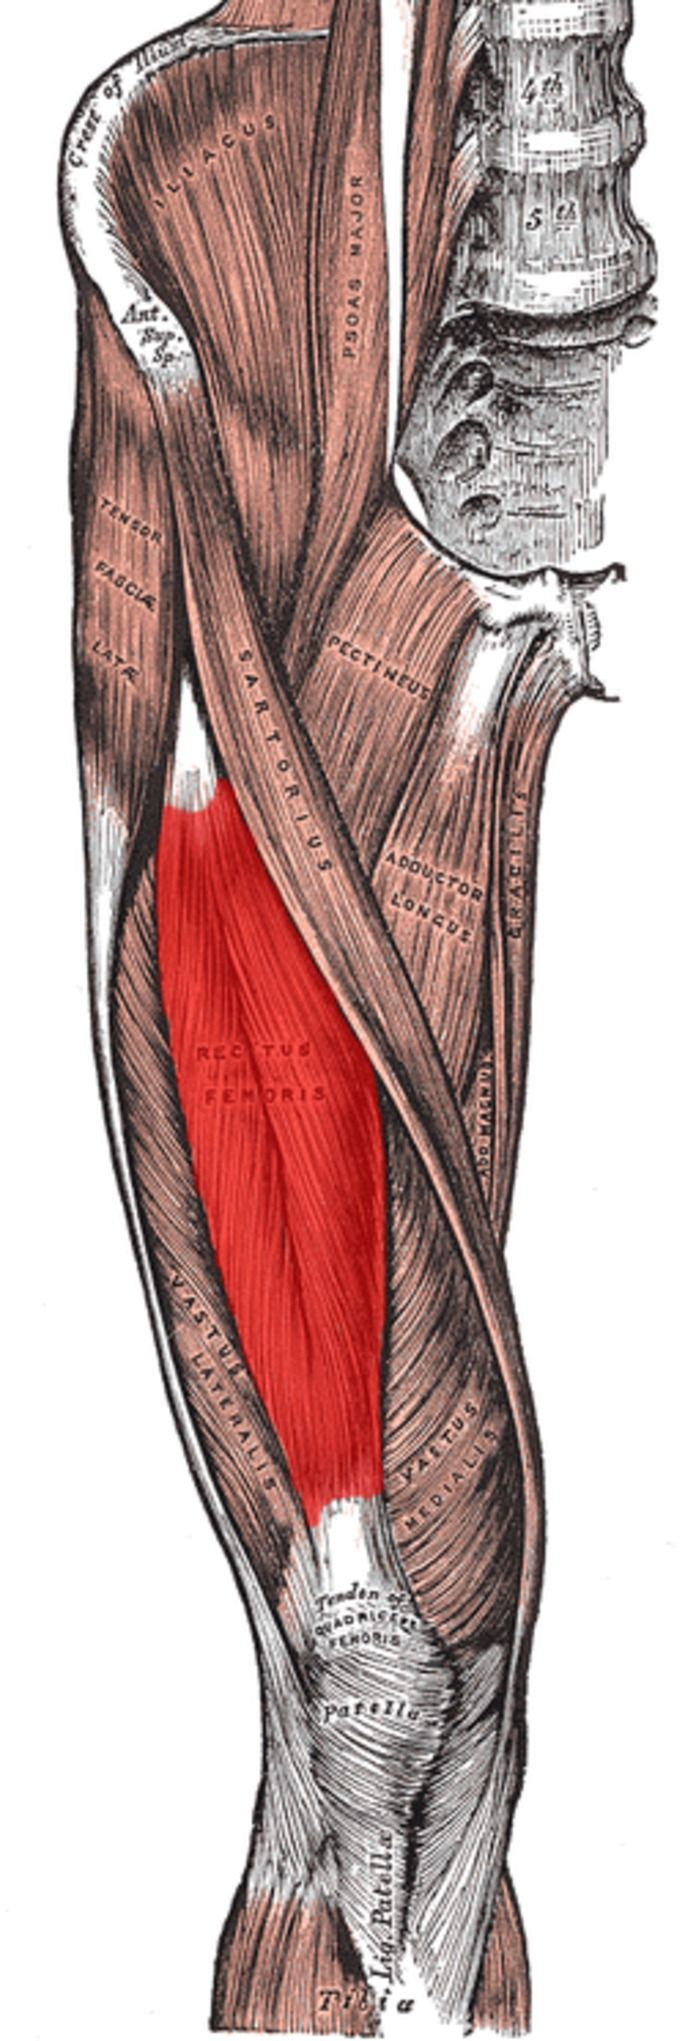 Rectus Femoris Muscle The golden rule about eating before you sleep ...